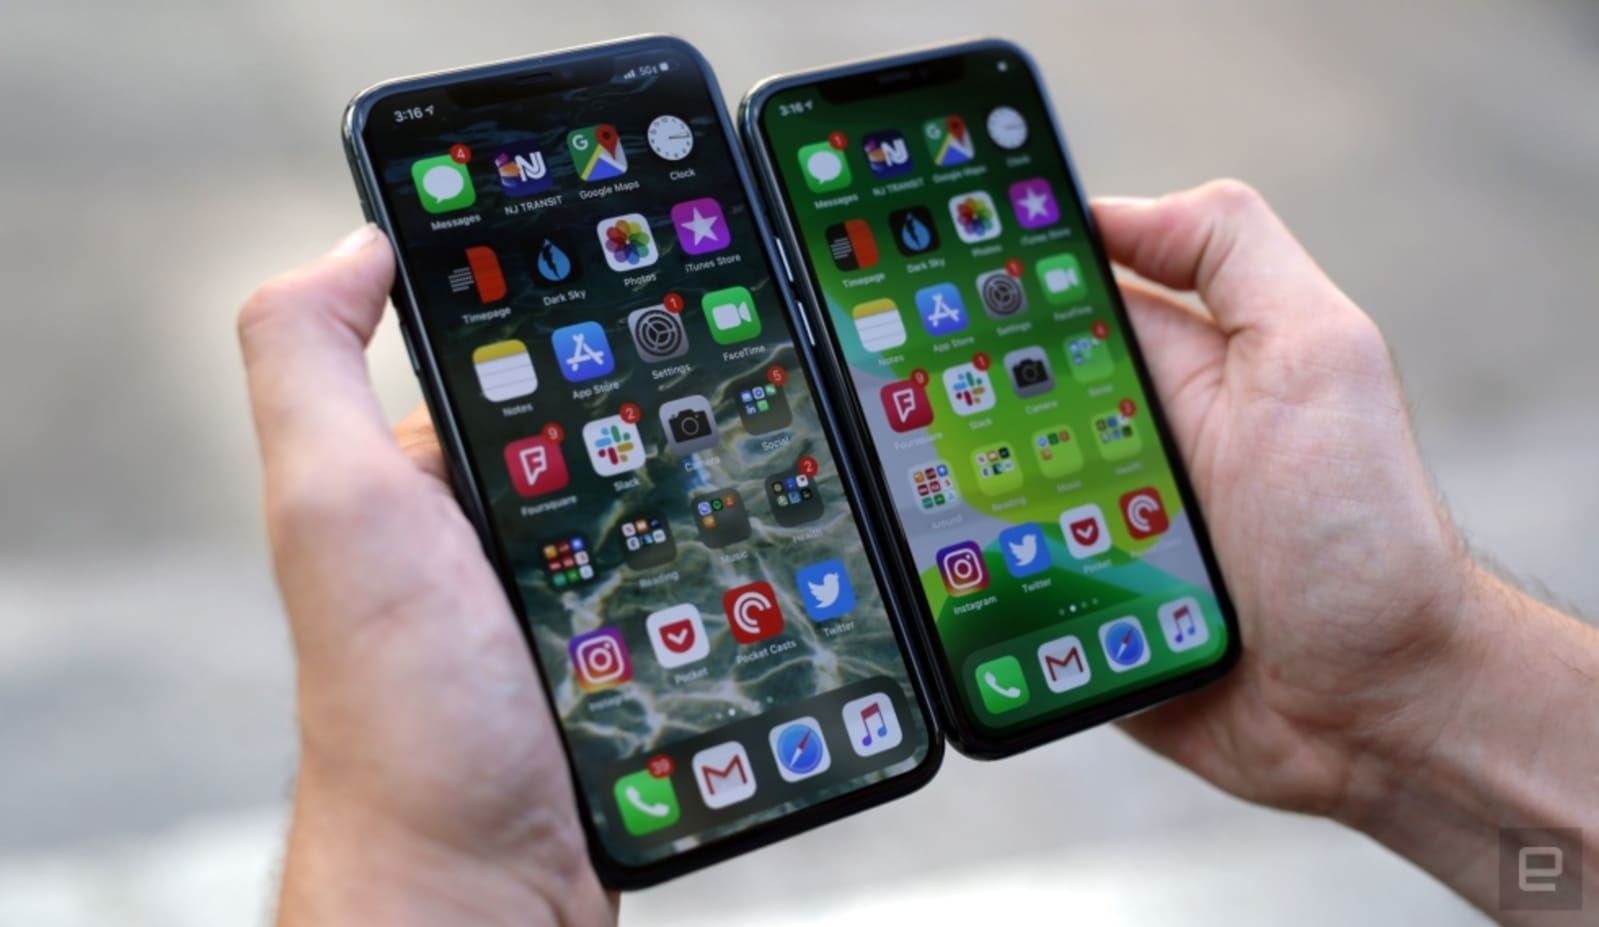 iOS 13 with Apple Arcade and watchOS 6 are now available